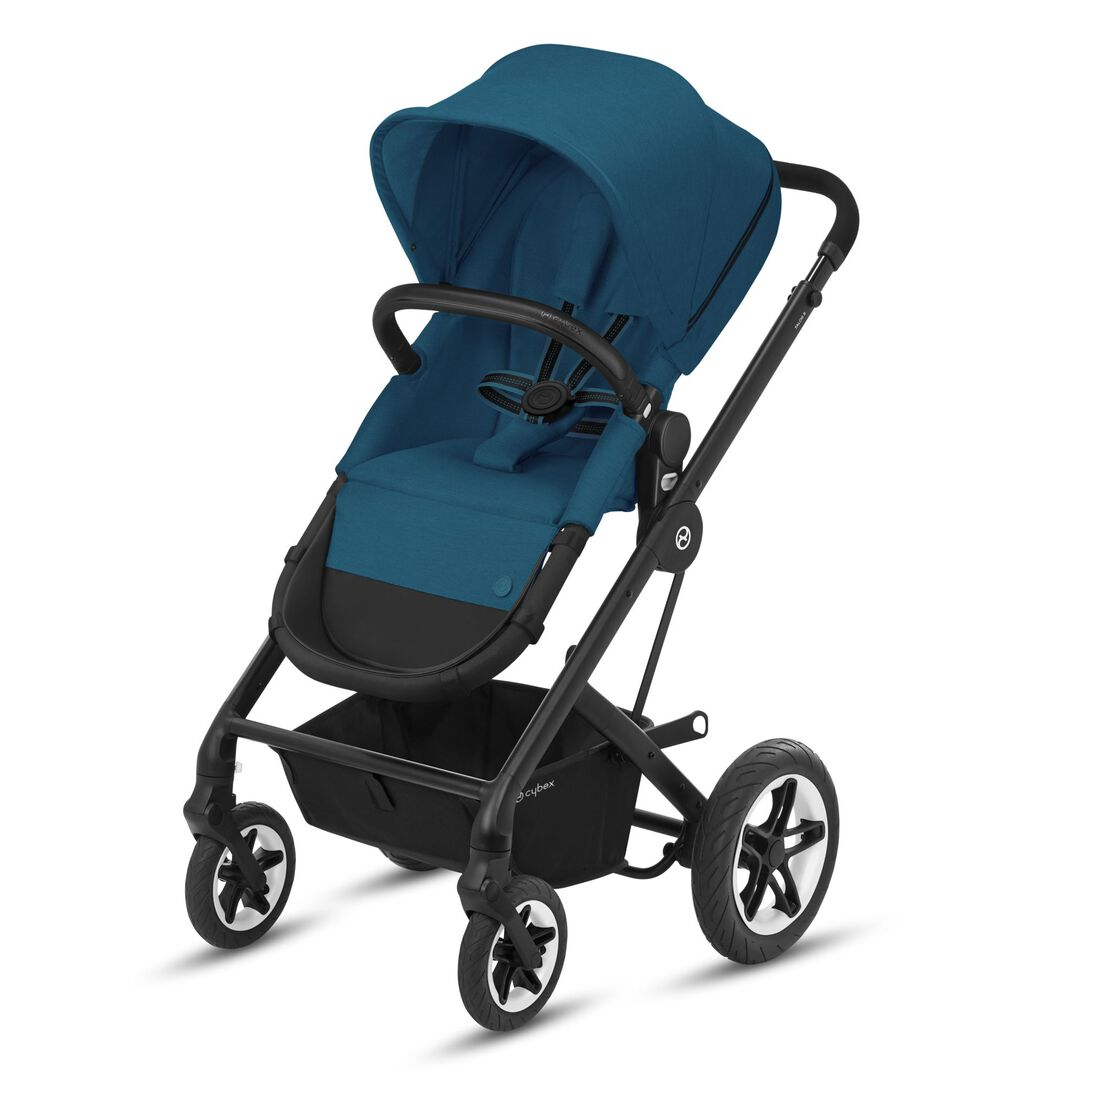 CYBEX Talos S 2-in-1 - River Blue in River Blue large image number 1